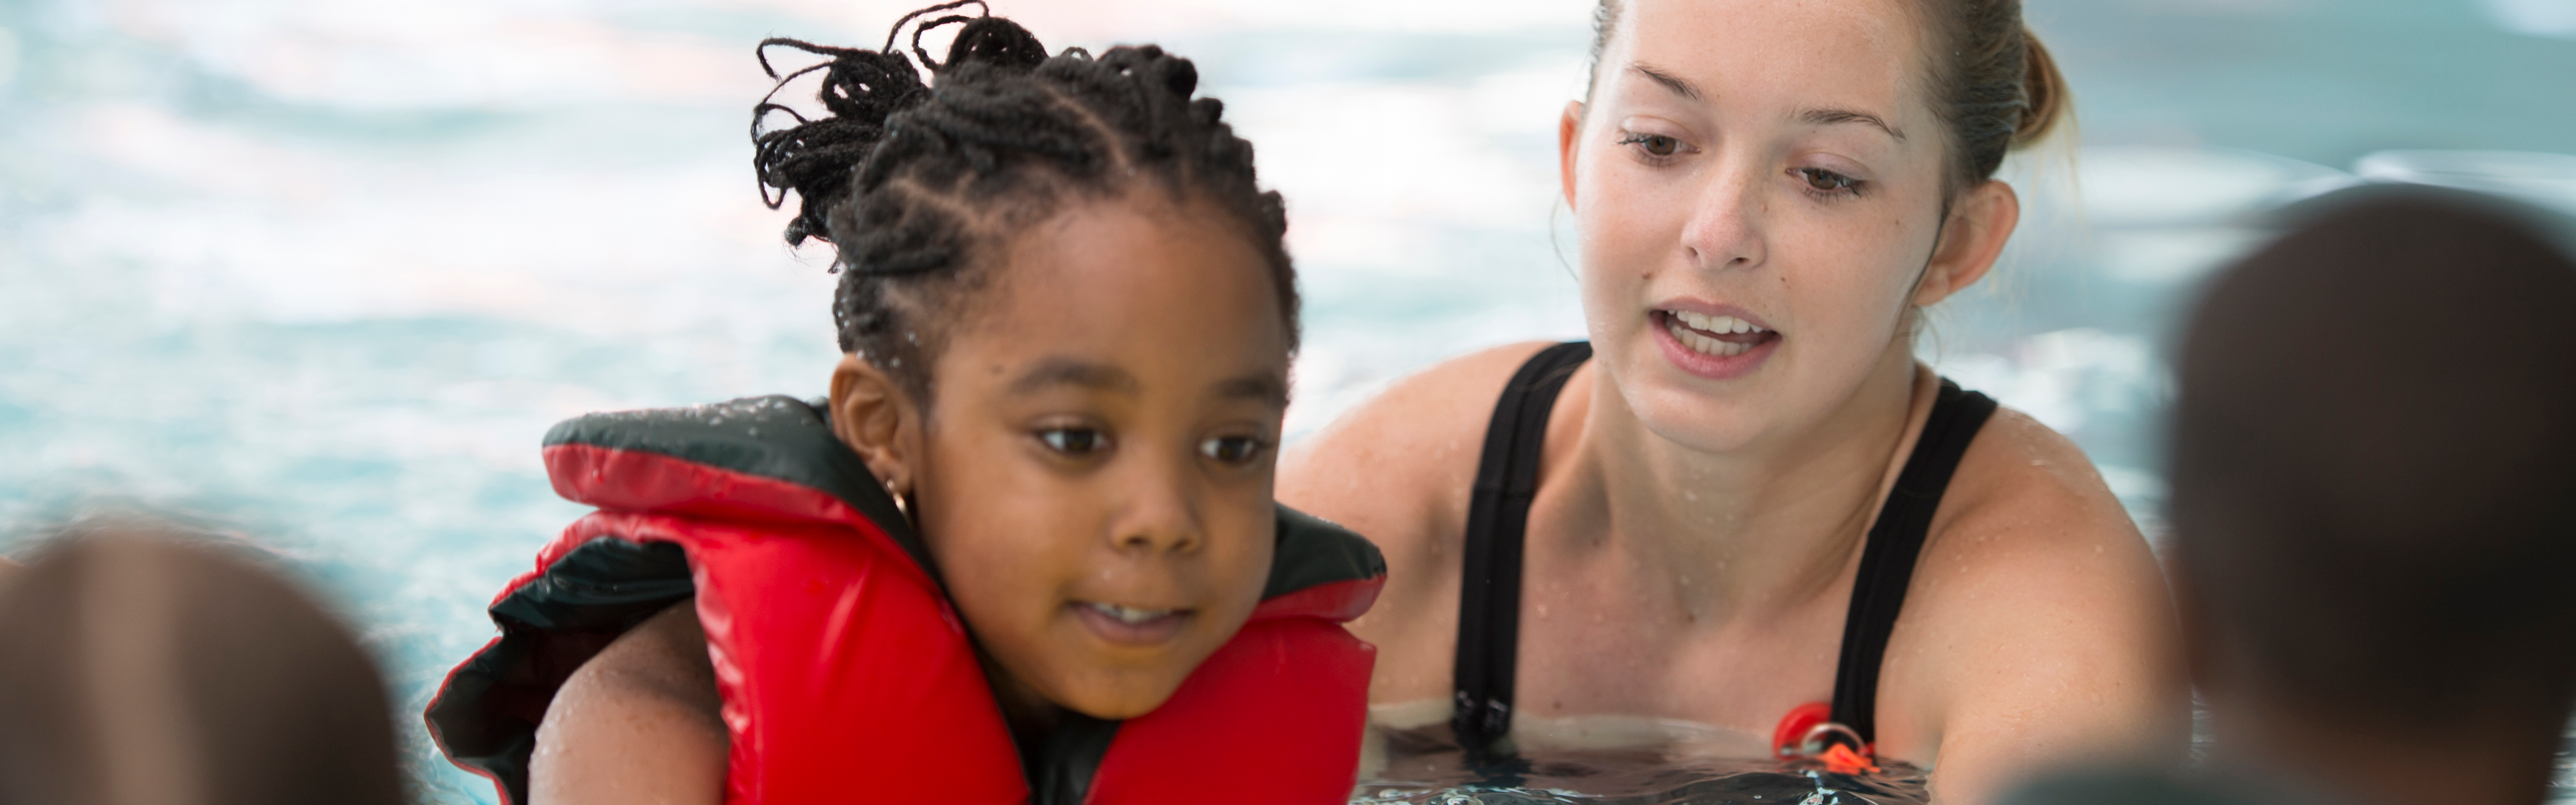 Ask An Expert: How Do You Prevent Childhood Drownings? image